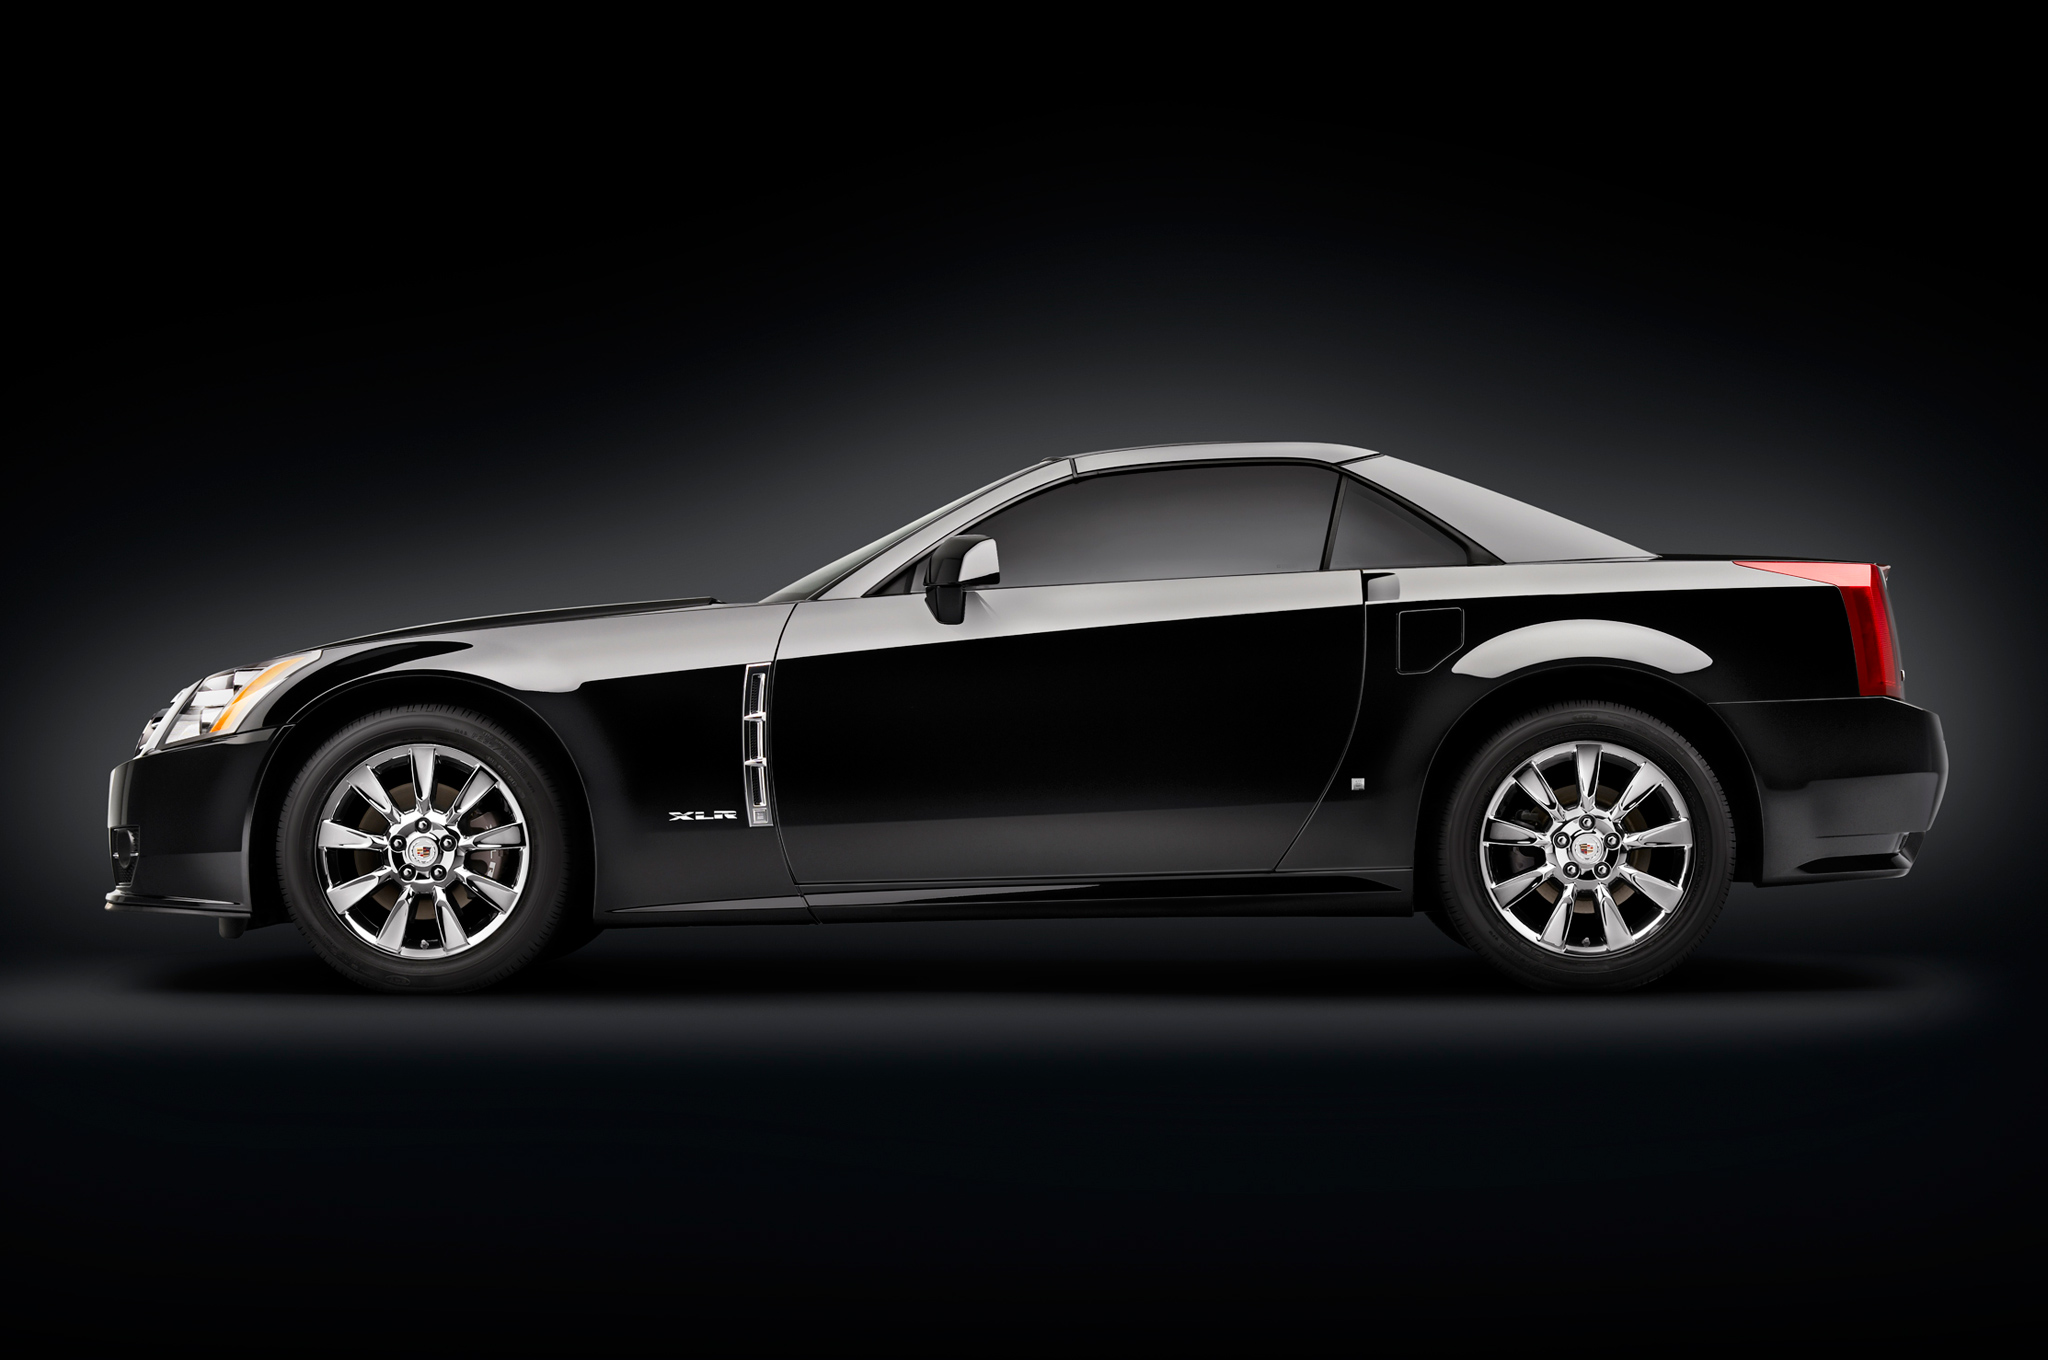 2016 Cadillac Xlr - pictures, information and specs - Auto ...